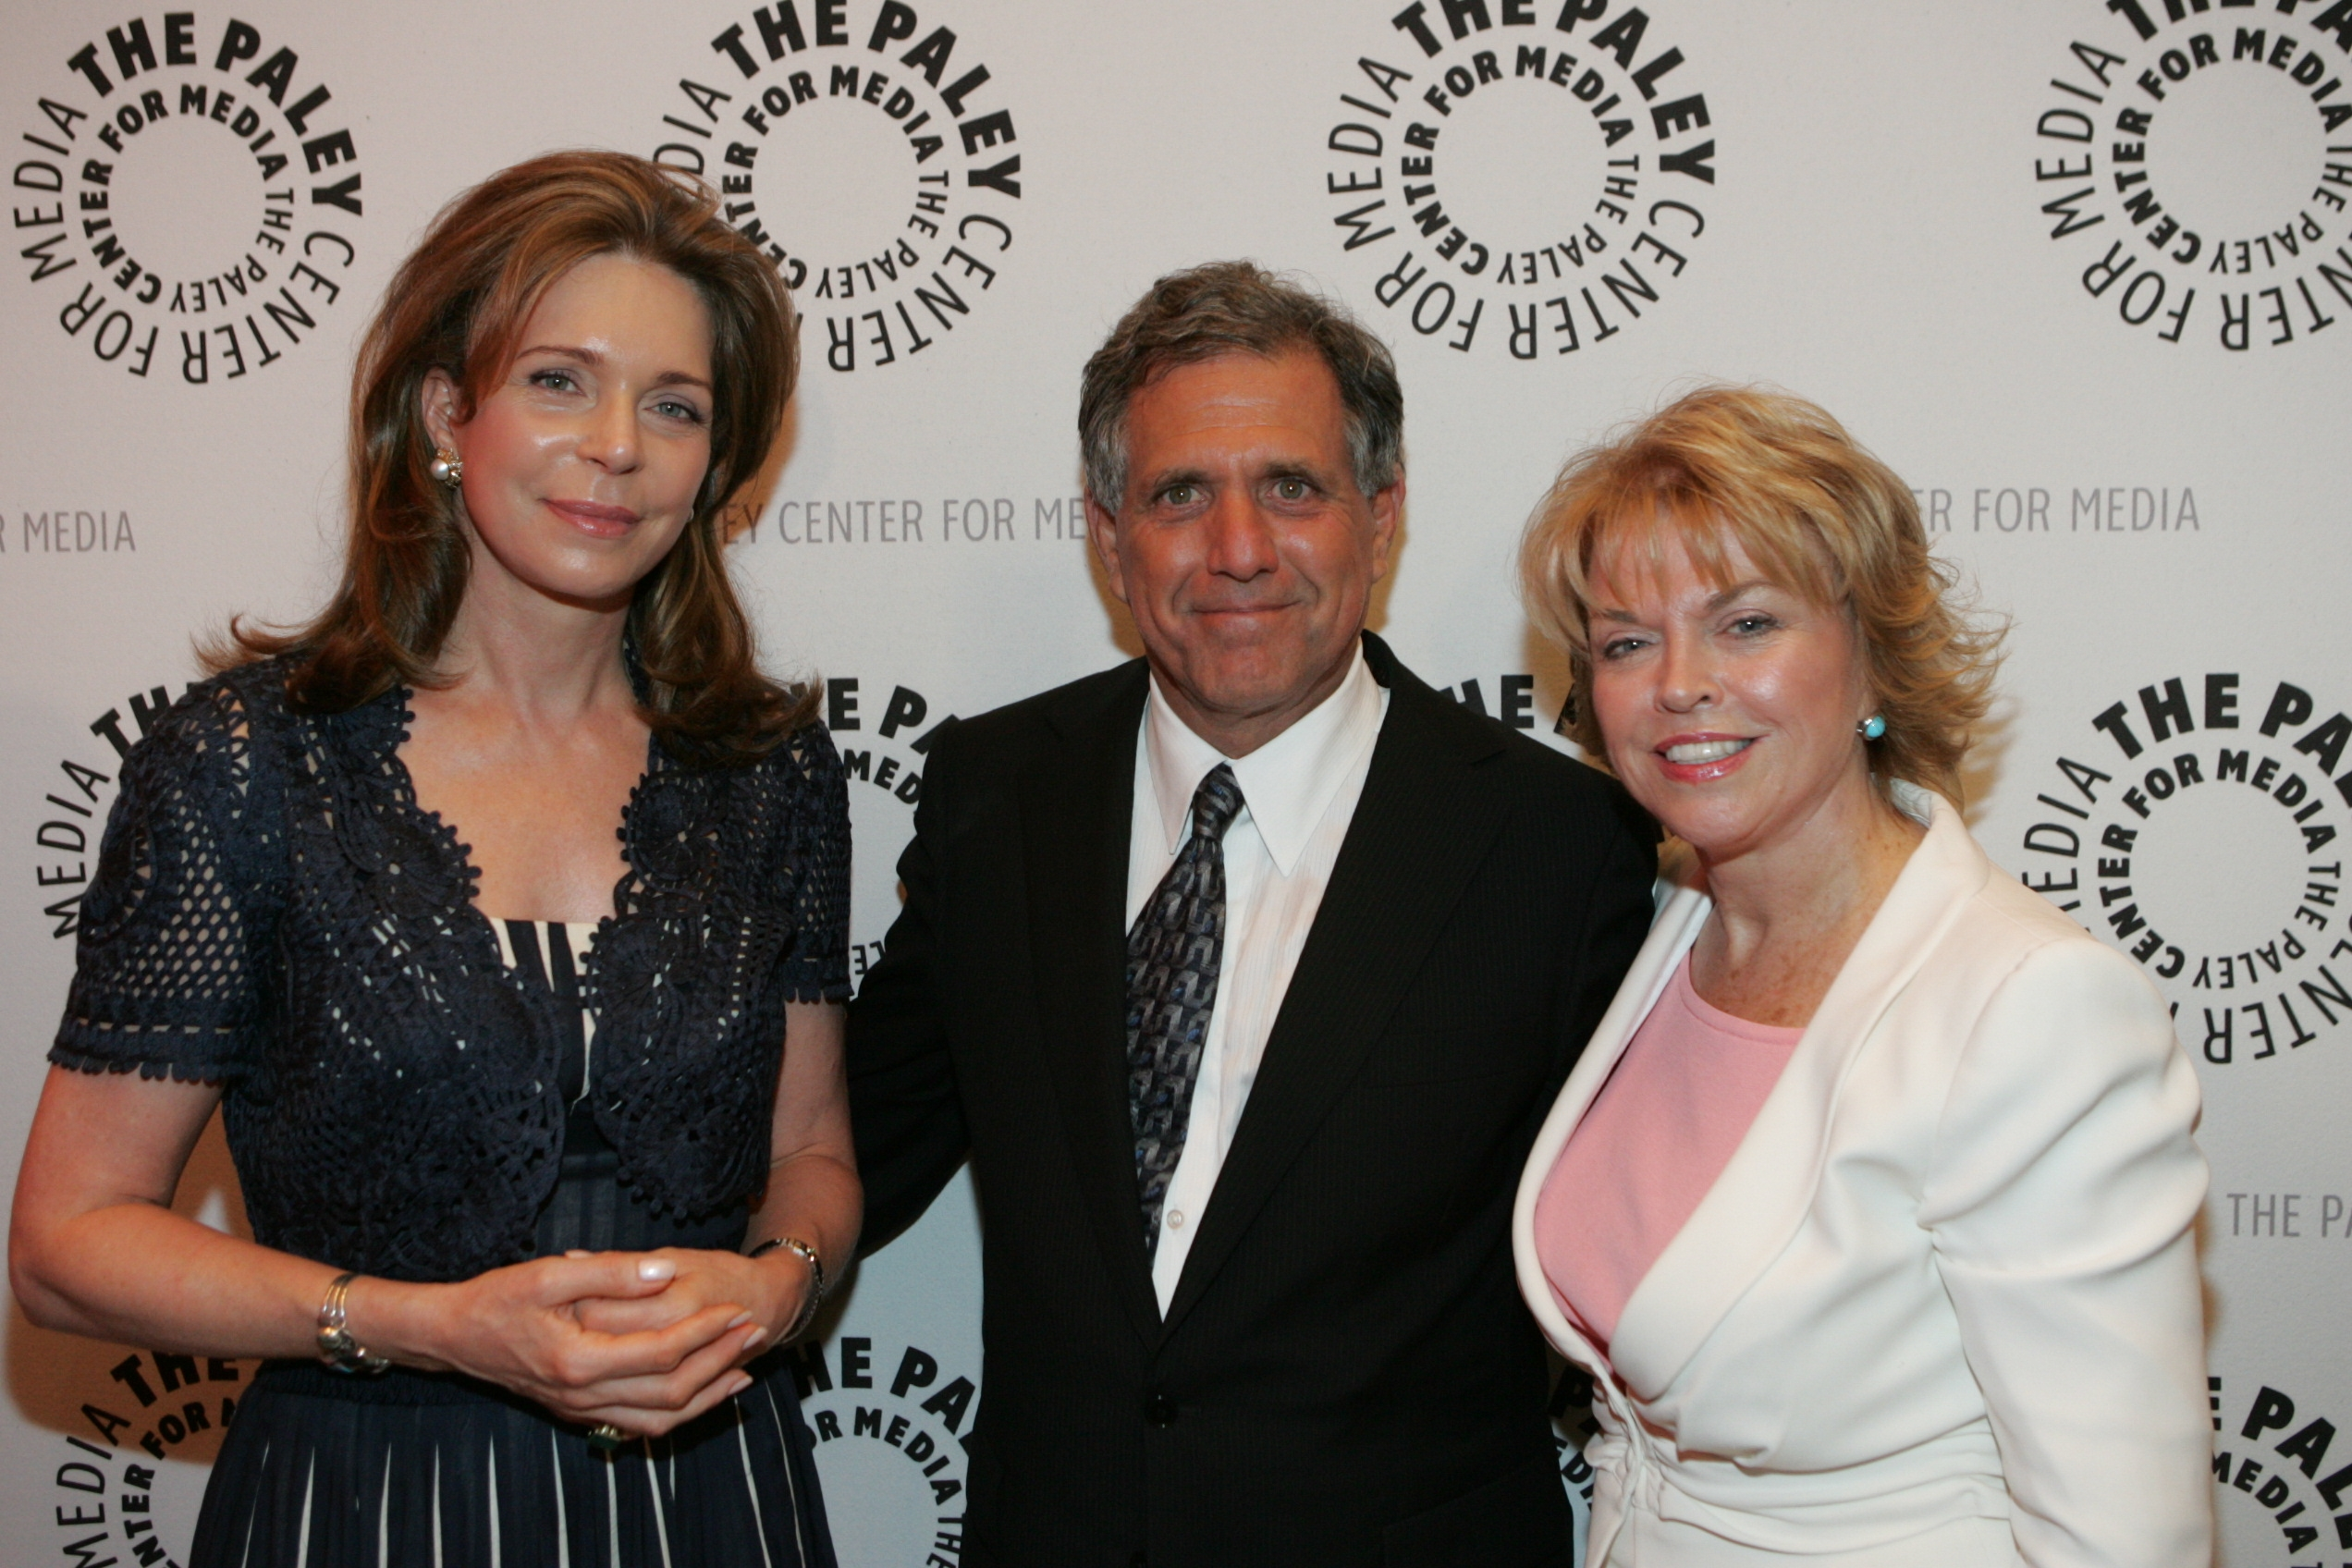 paleycenter-moonvesnoormitchell1.JPG